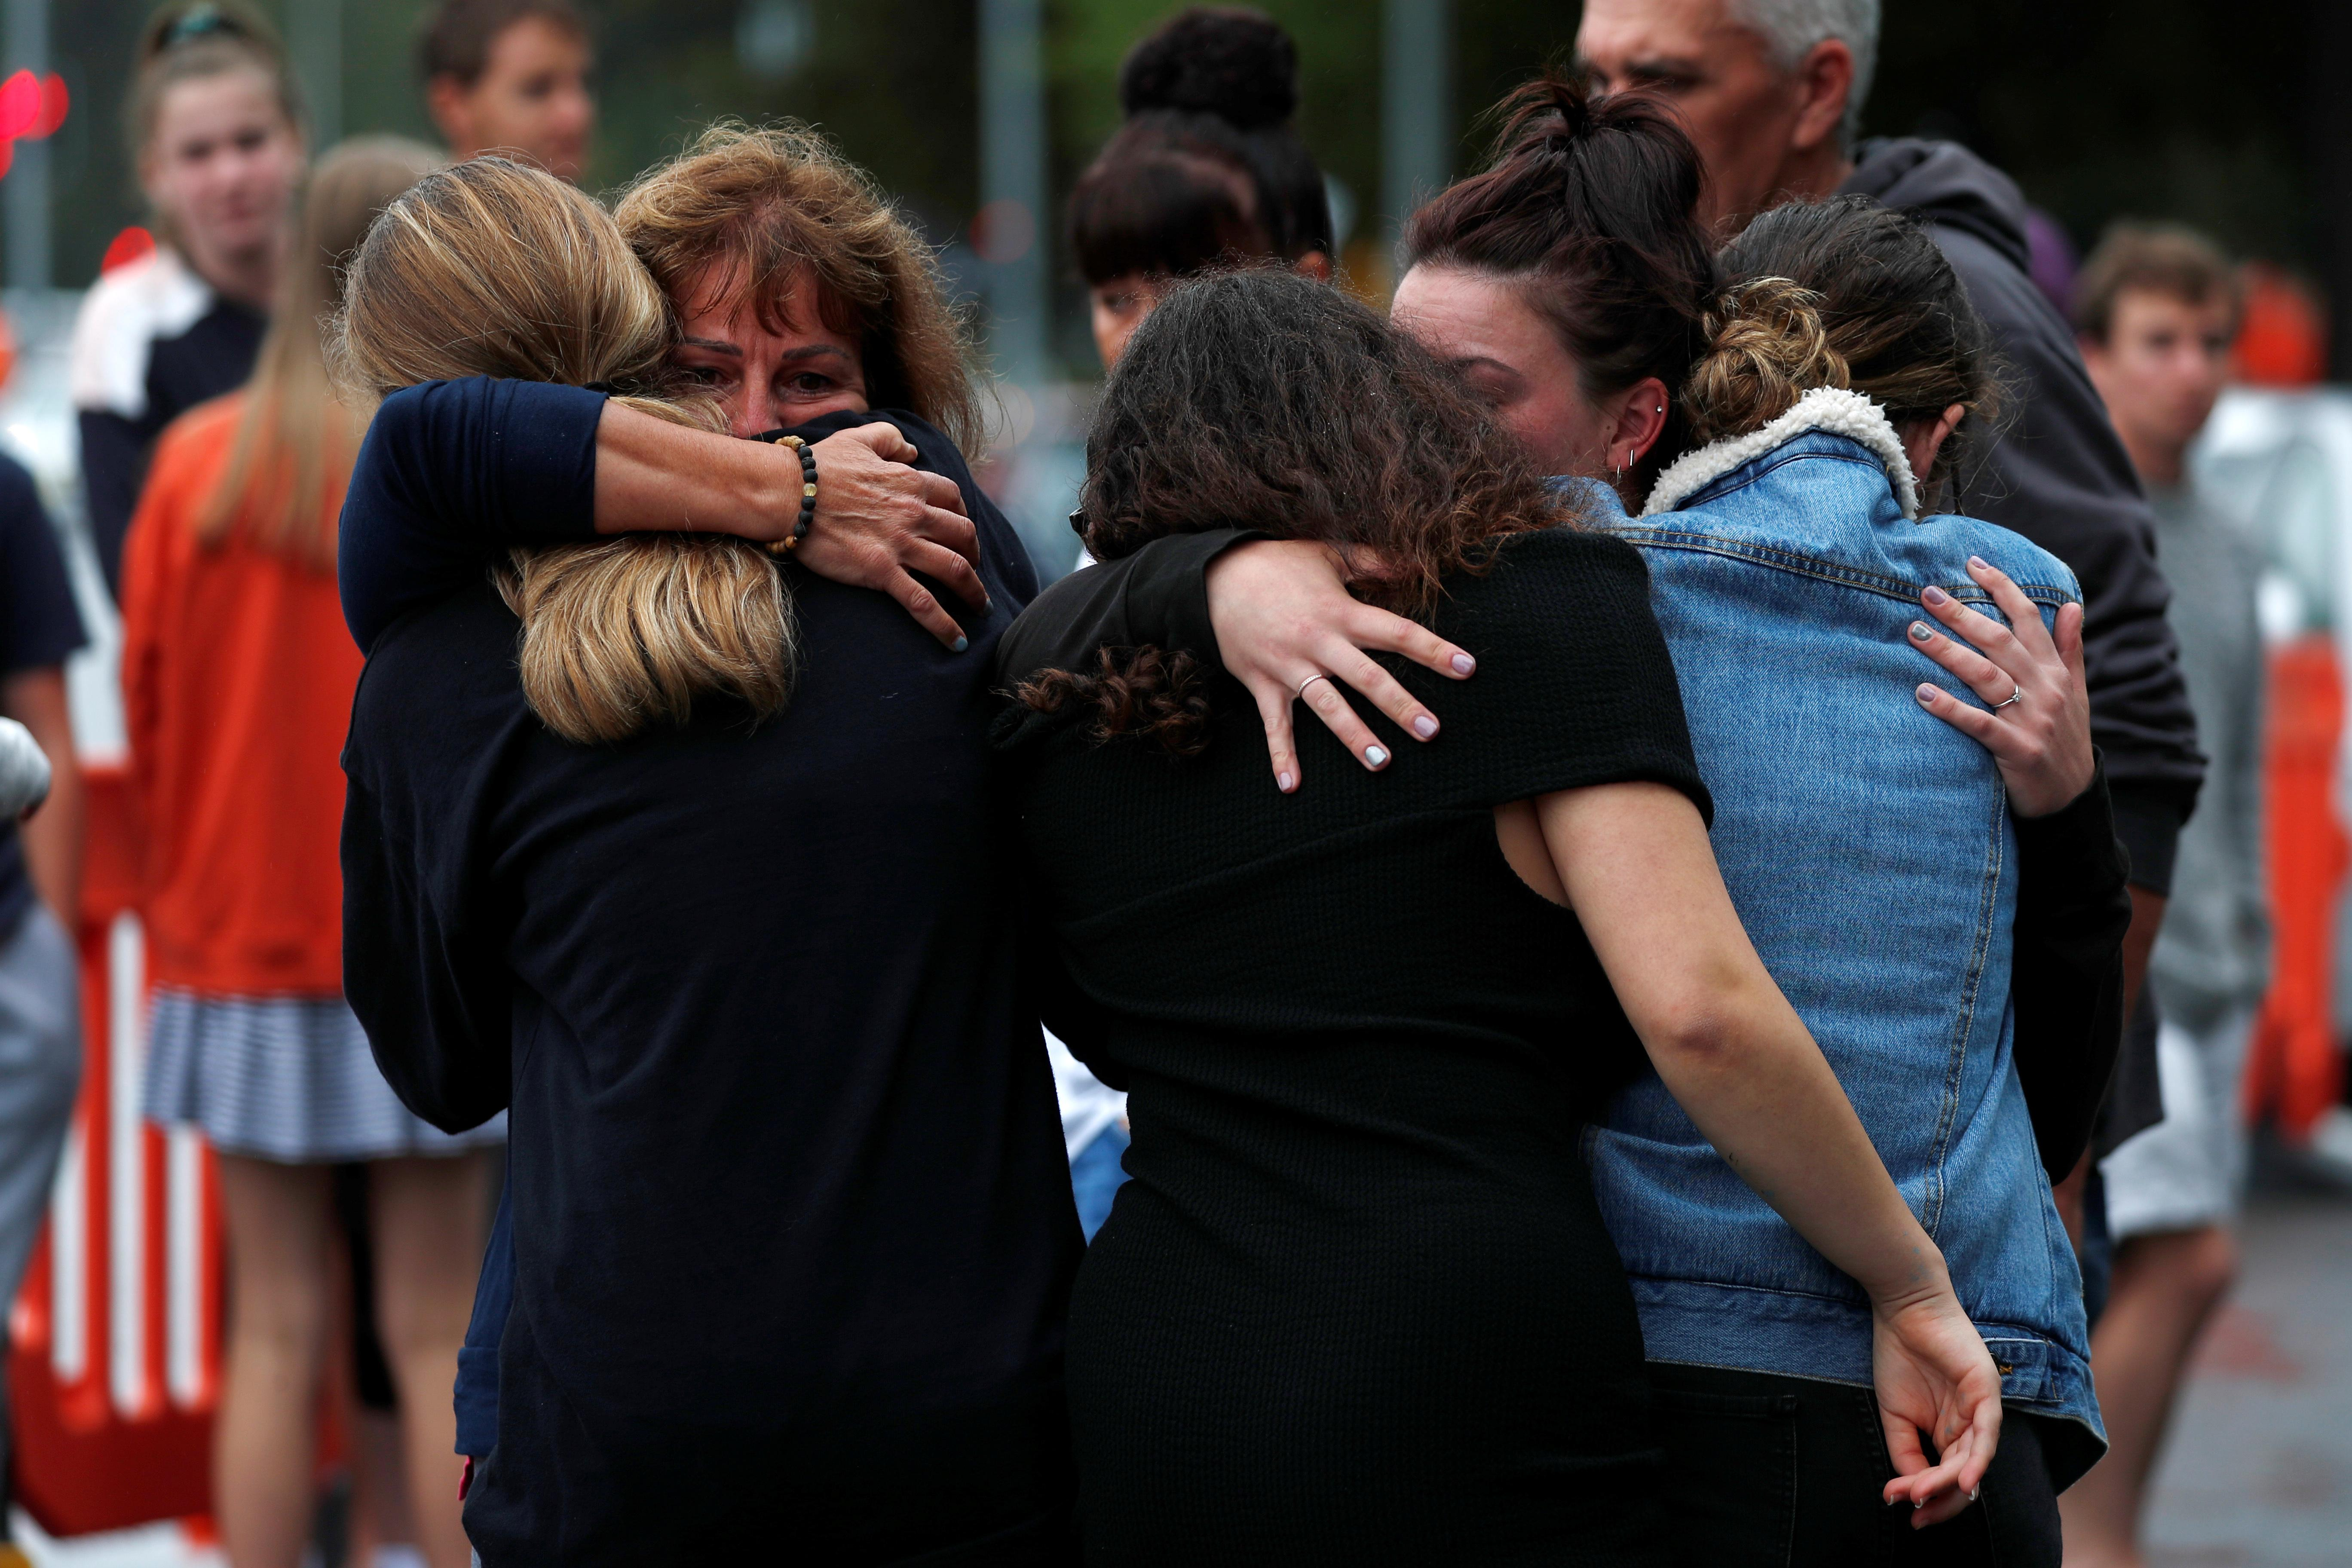 Student pilot, takeaway owner, child among victims of NZ shootings